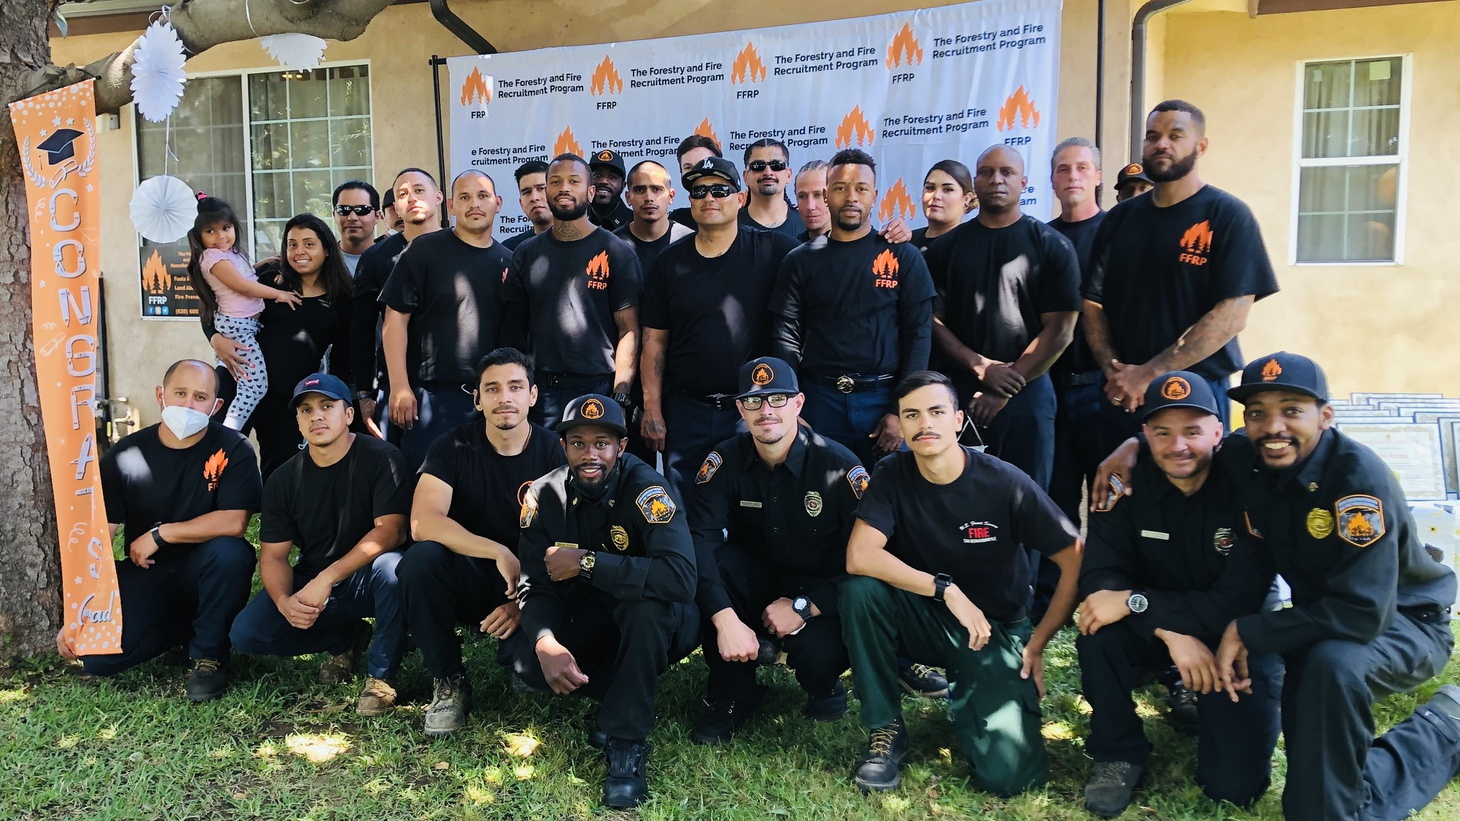 The Forestry and Fire Recruitment Program helps formerly incarcerated firefighters become professional wildland firefighters once they're home.